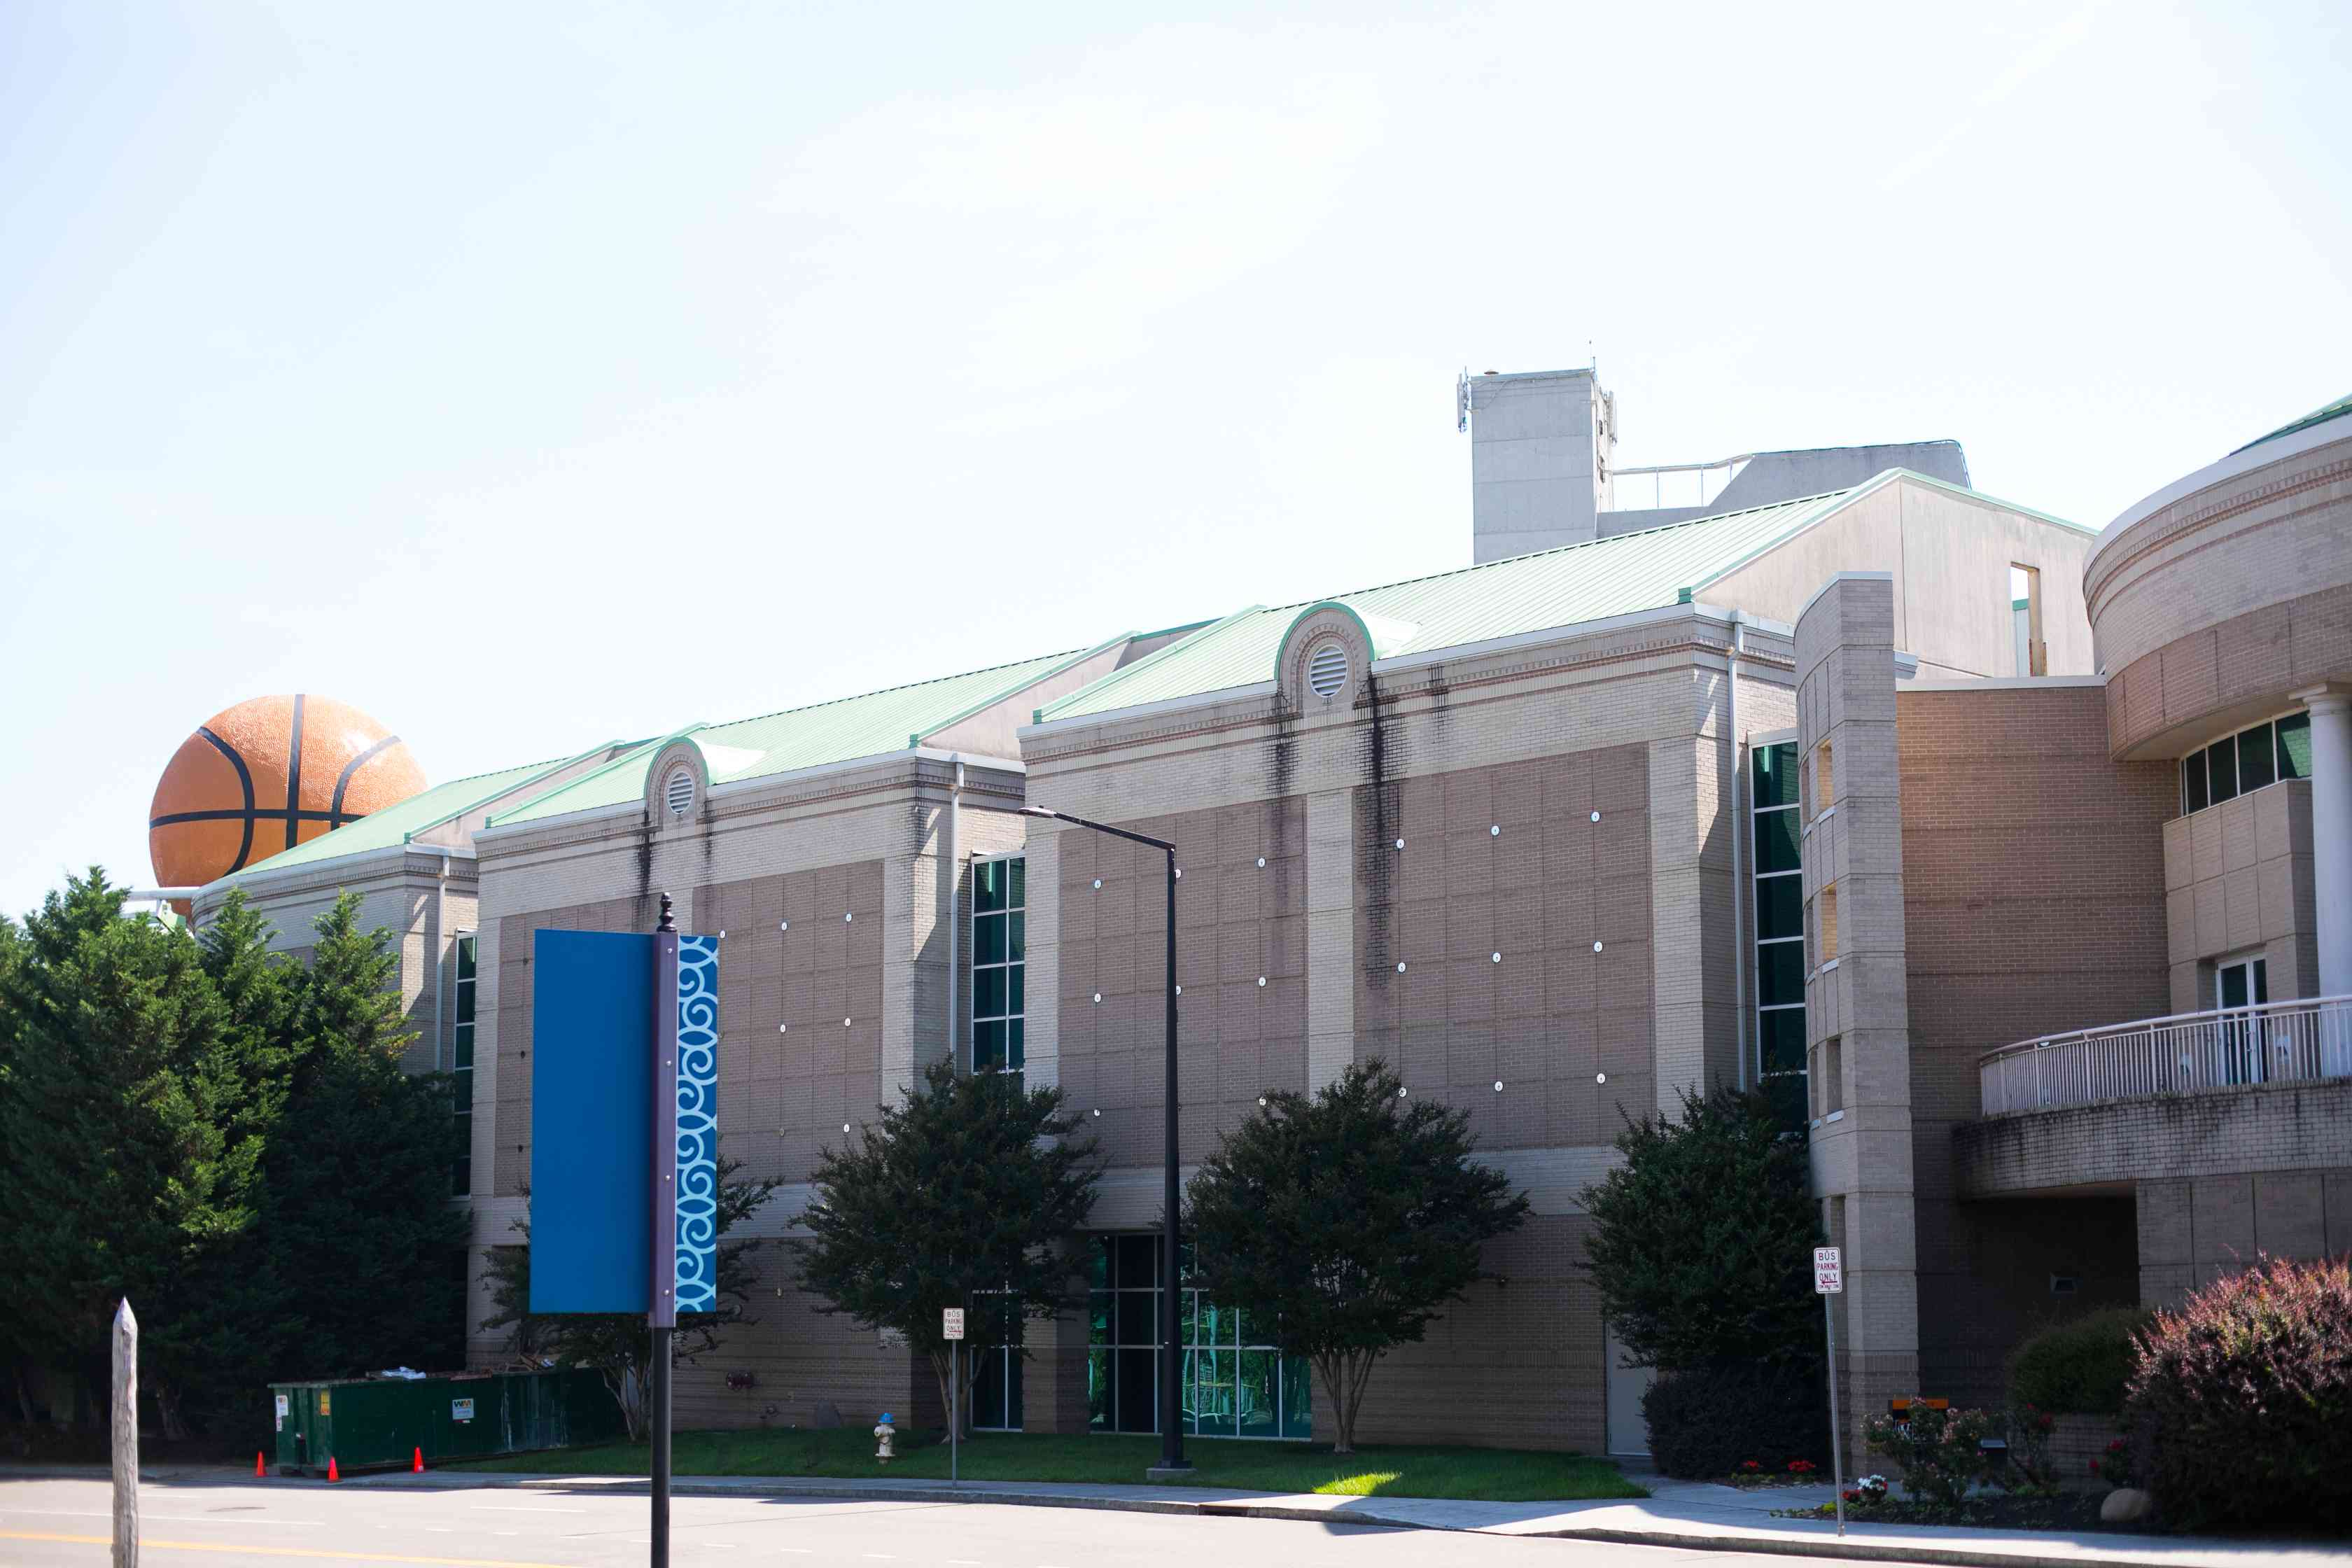 Exterior of the Women's Basketball Hall of Fame